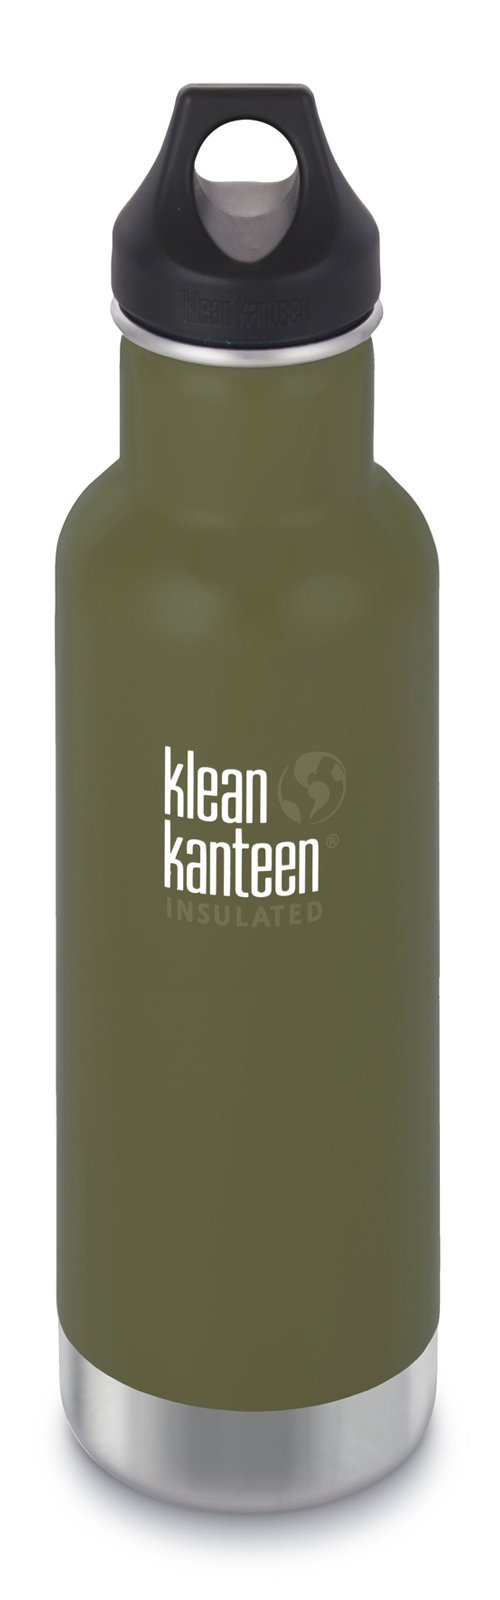 Klean Kanteen Fresh Pine Classic Vacuum Insulated Storage with Loop Cap, 20-Ounce